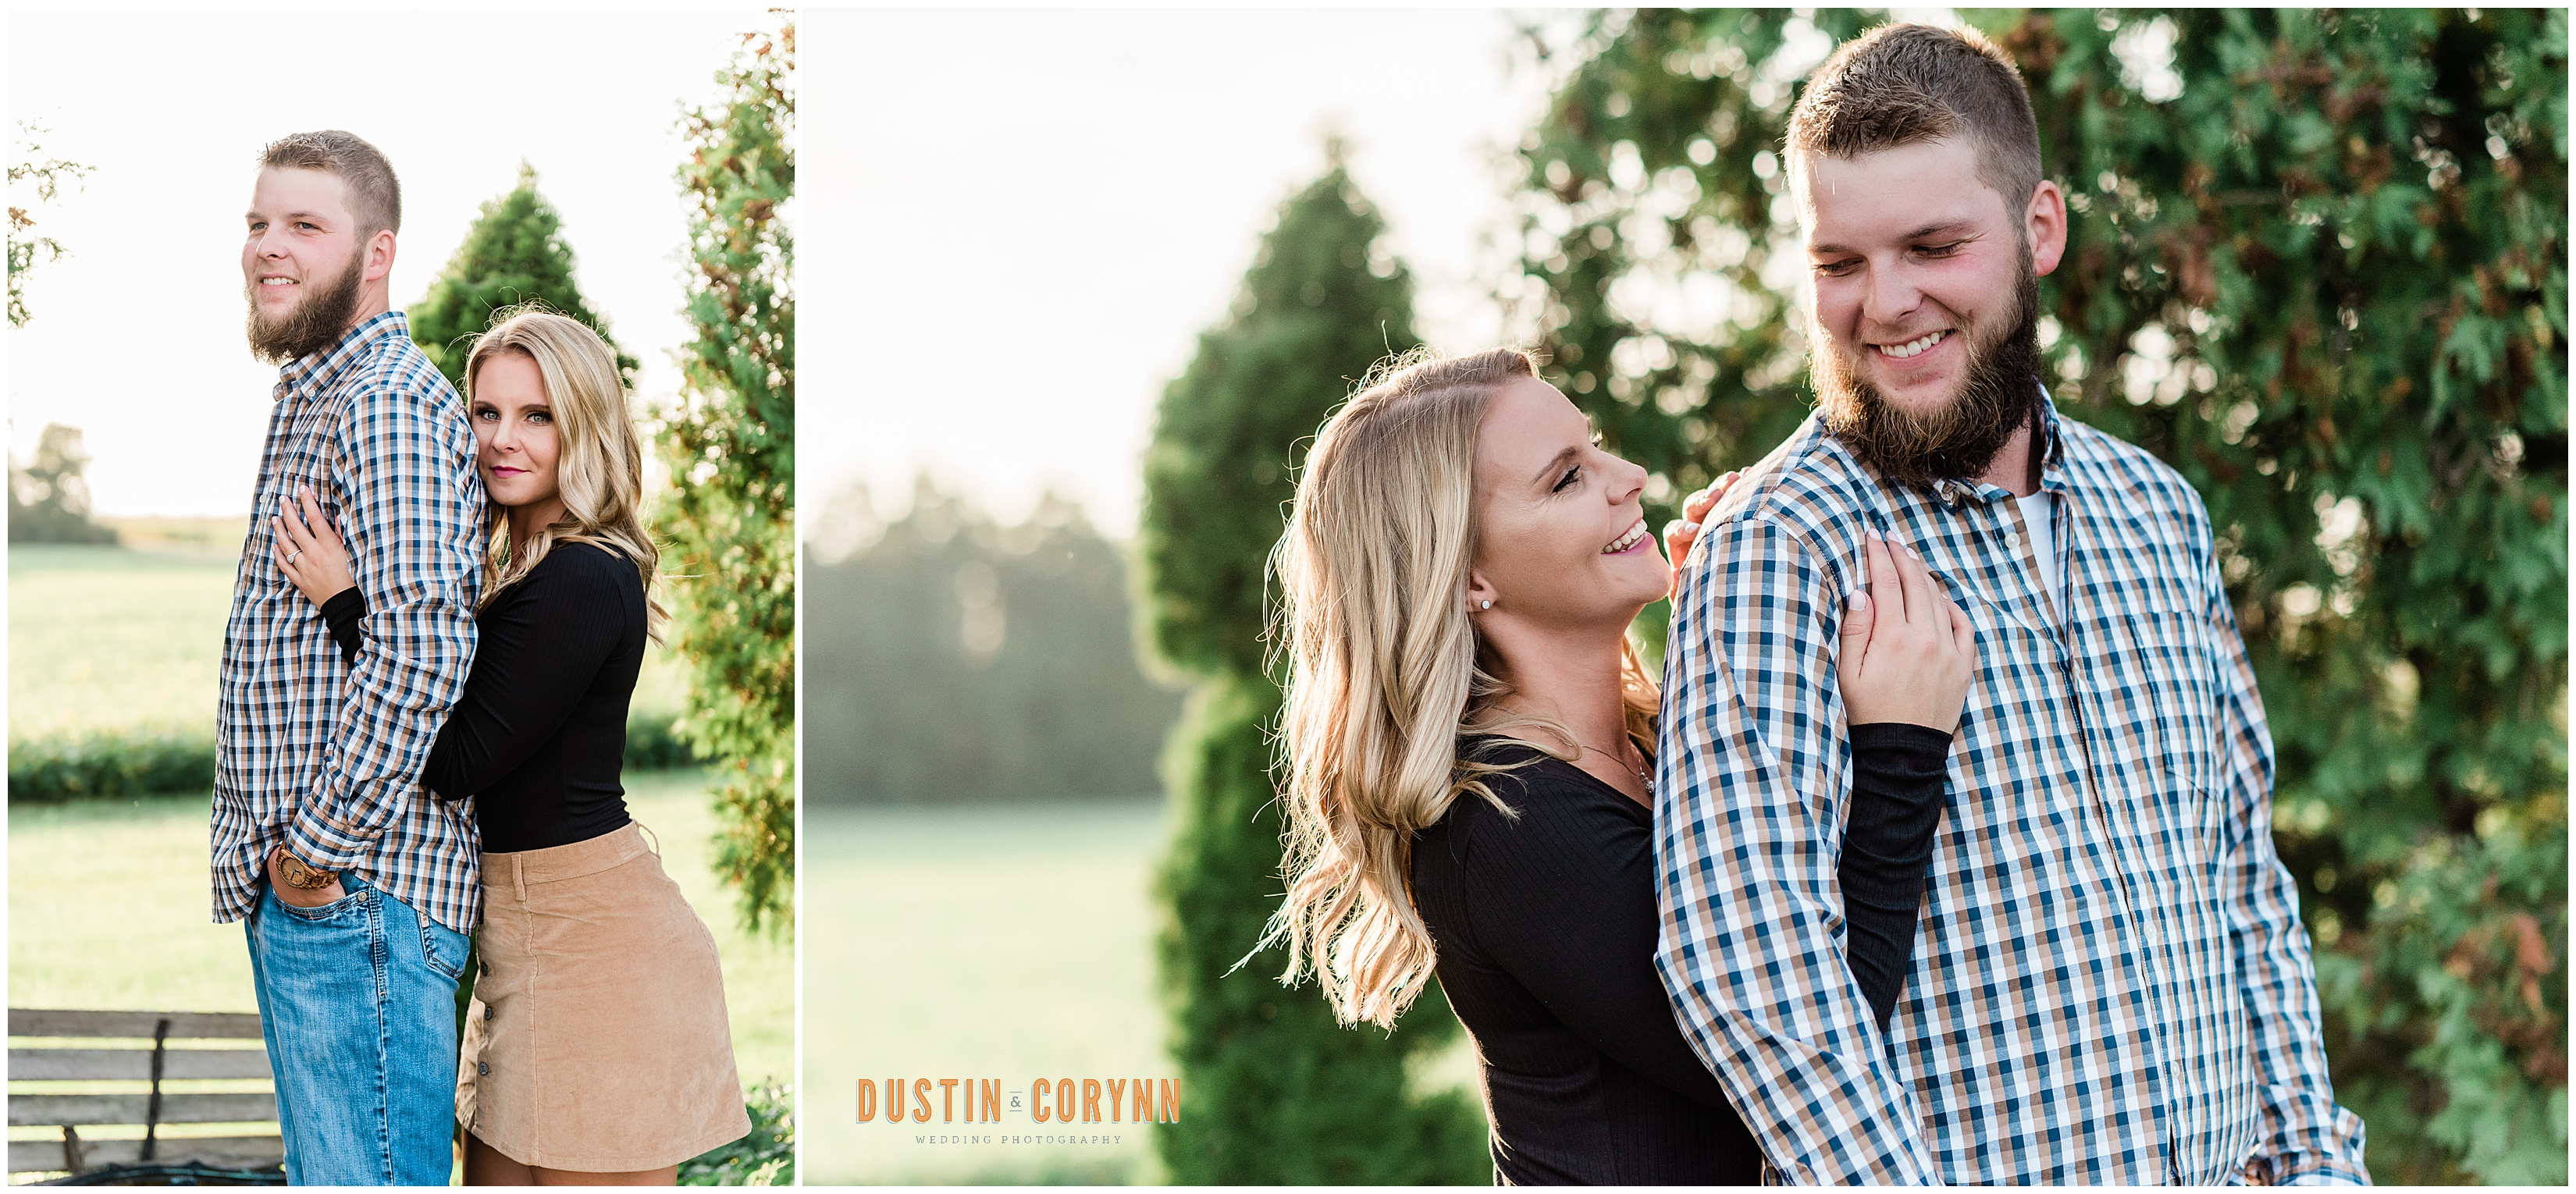 Couple at Engagement Session